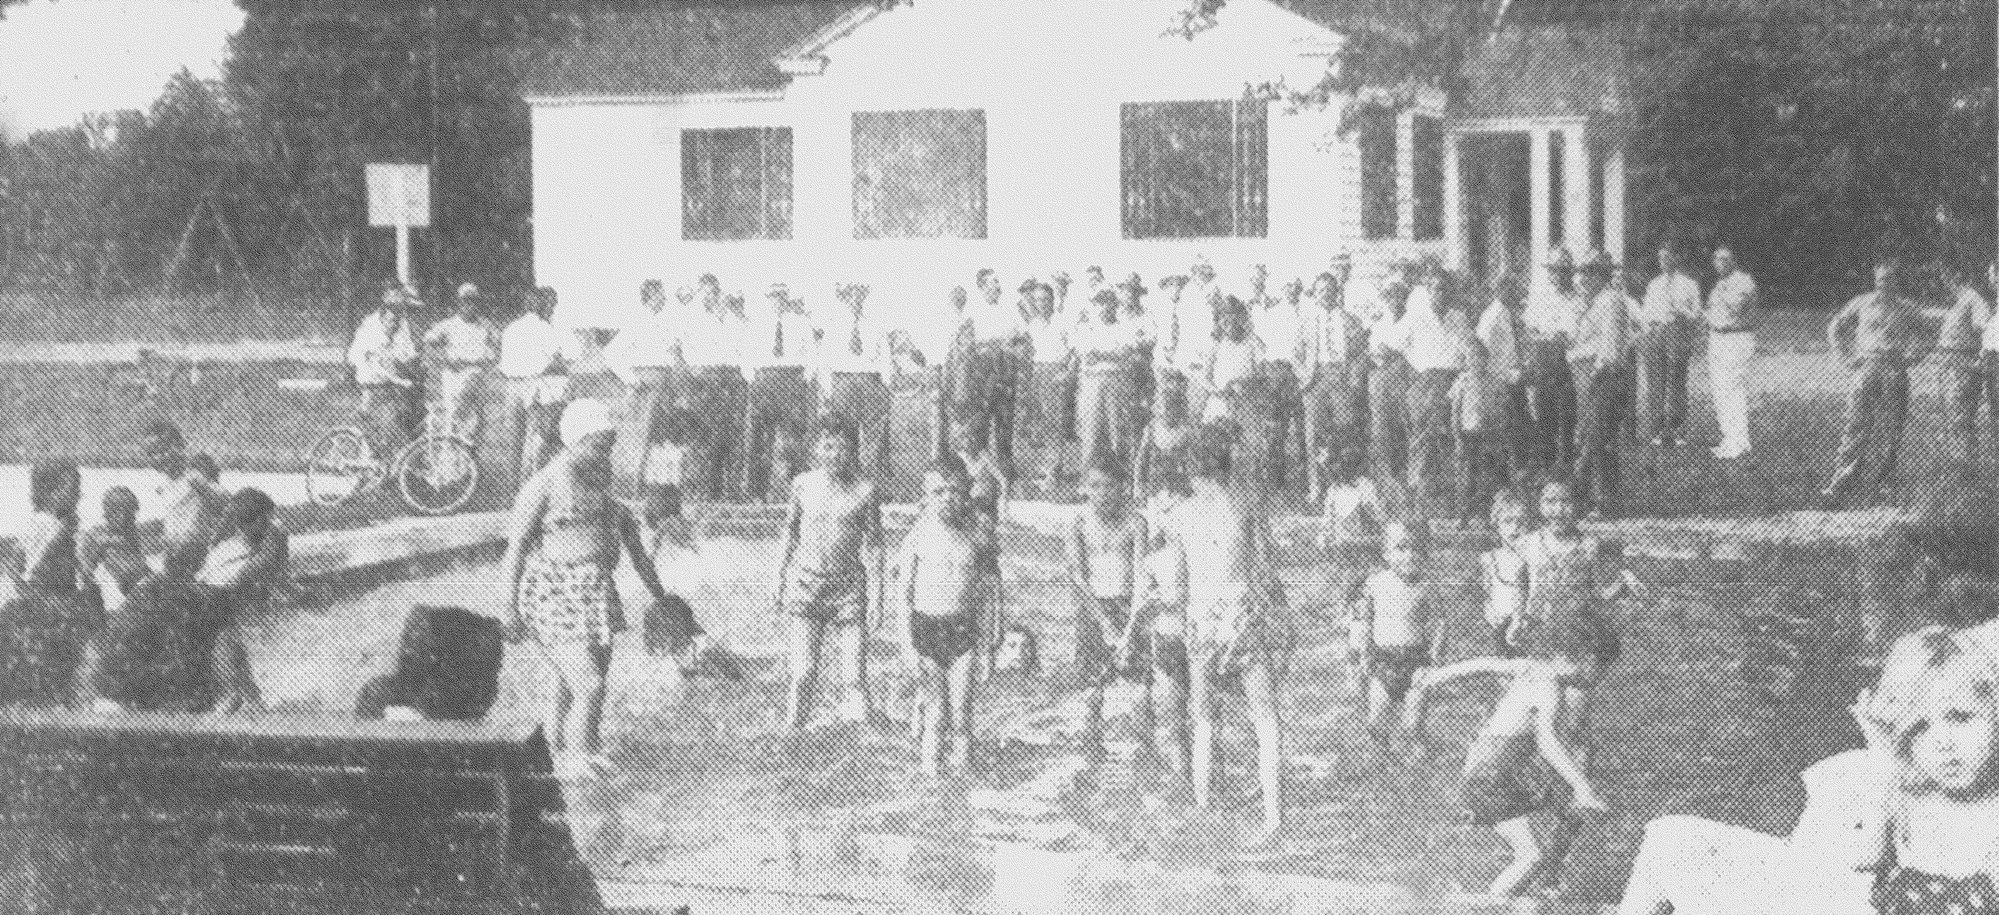 About 70 members of the Lions Club look on as children of the Jenkins Center playground splash in the new wading pool contributed by the club in July 1947. With the members are Mayor Edwin Boyle and members of the city council.